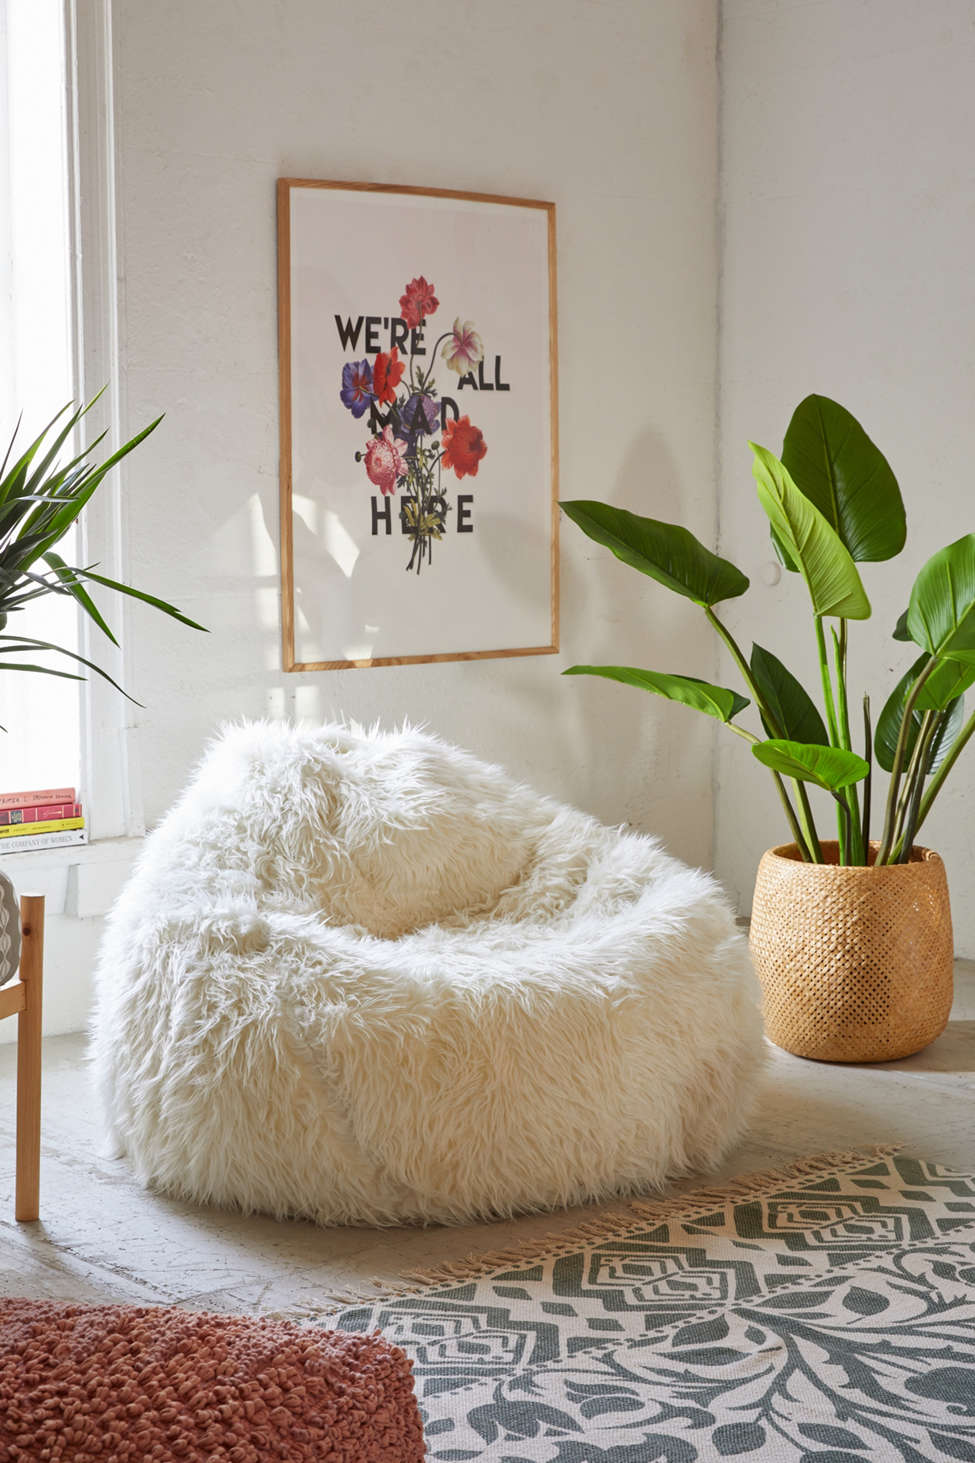 The One Thing That Will Make Your Room So Much Cozier